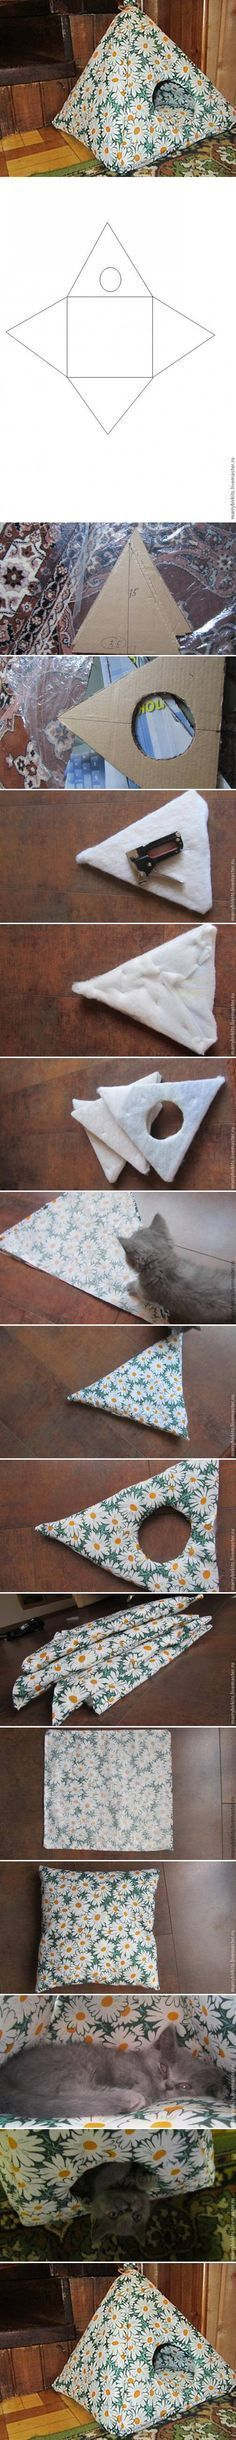 DIY House for Cat or small dog or make it small enough for any of your pet rodents. Love rats and all! <3